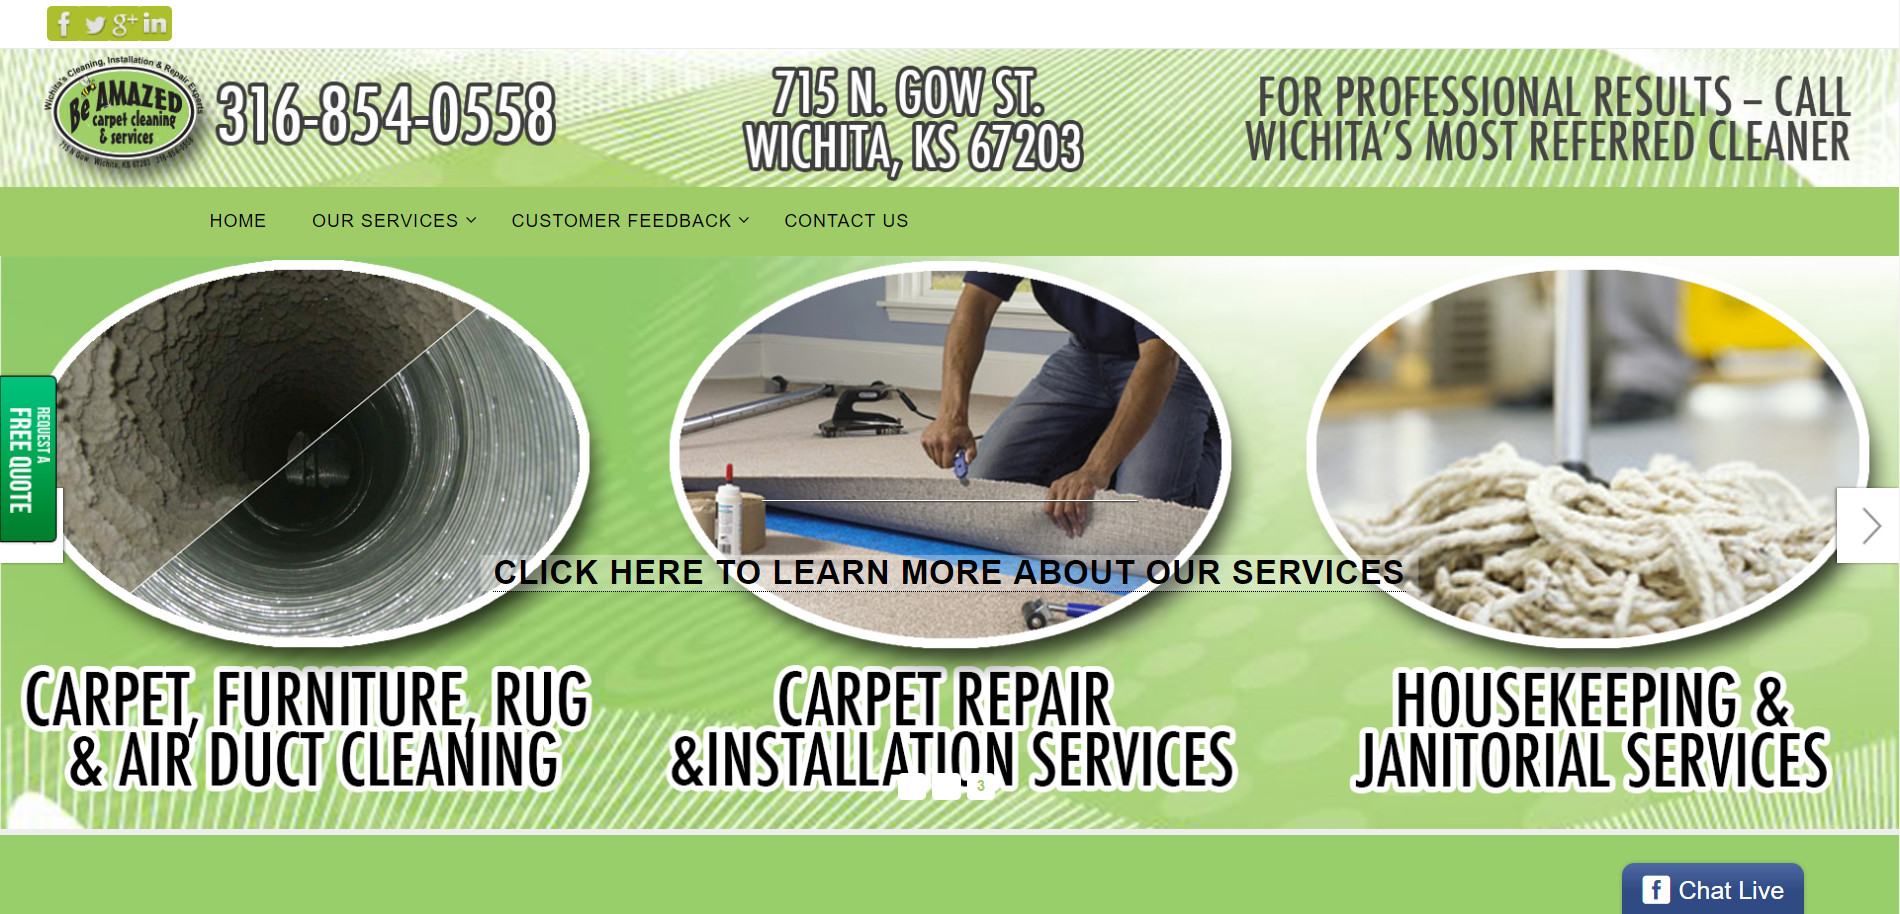 Be Amazed Carpet Cleaning website